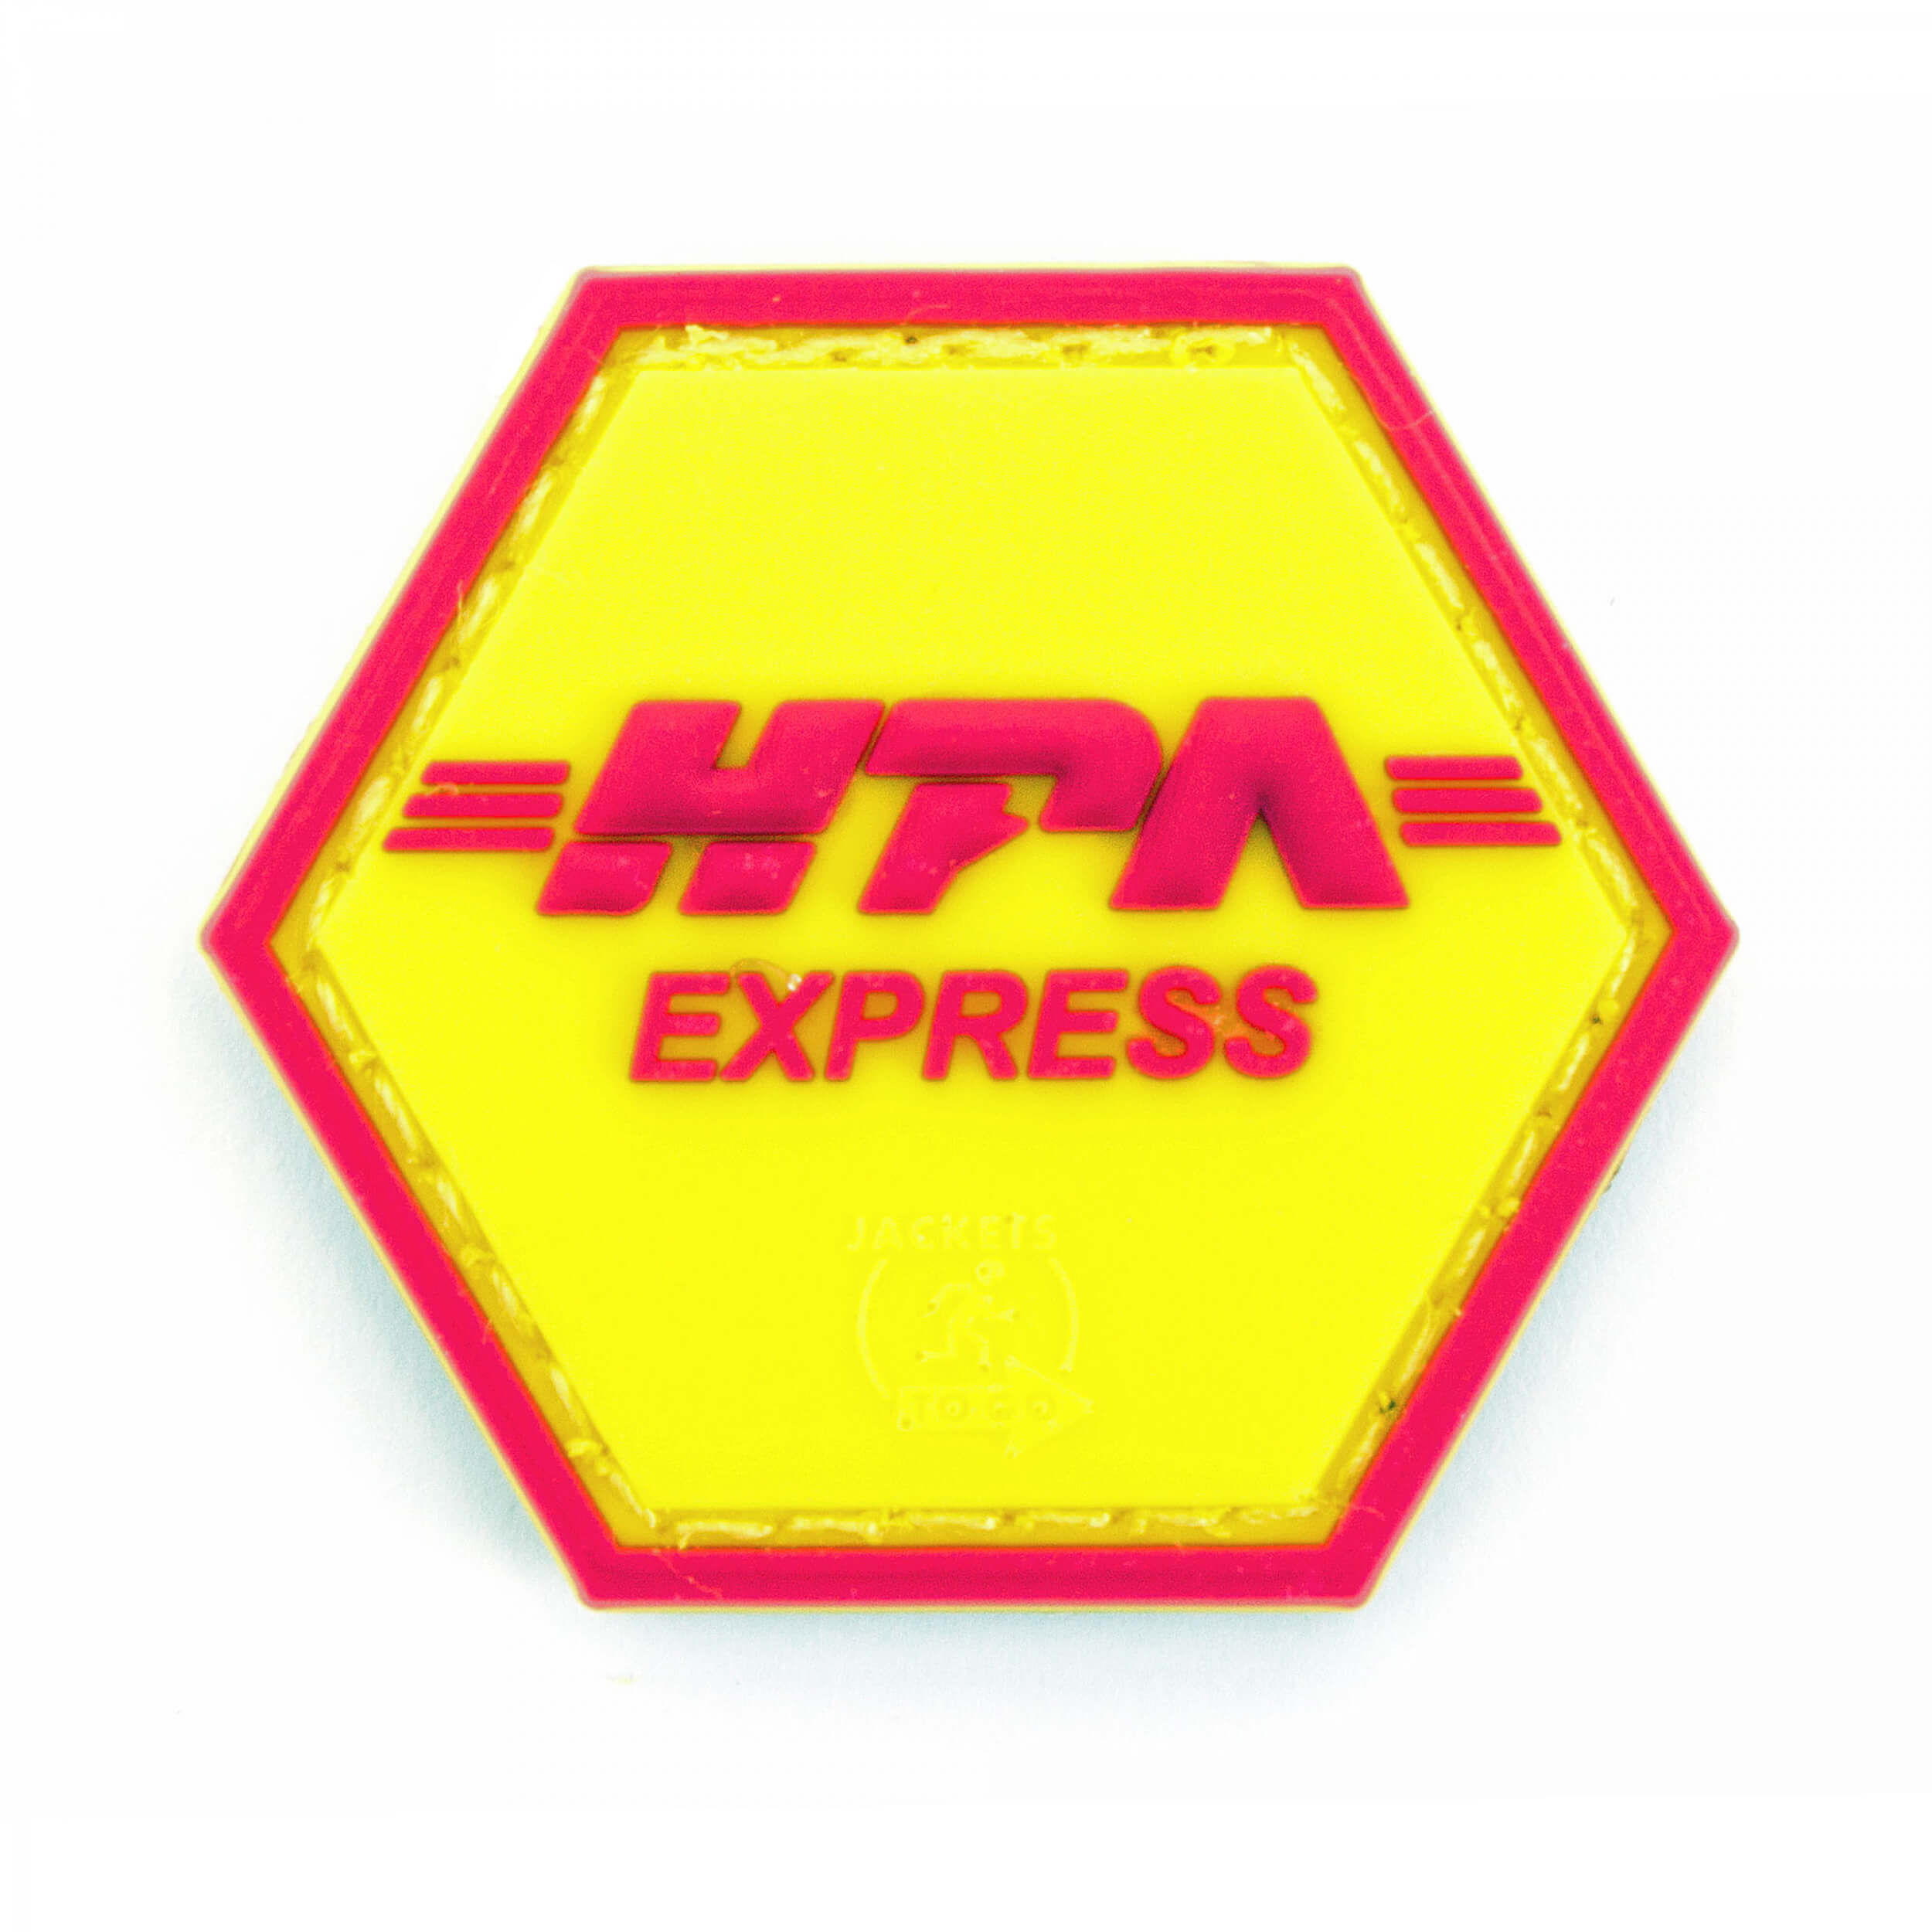 JTG HPA EXPRESS Hexagon Patch  (gb)